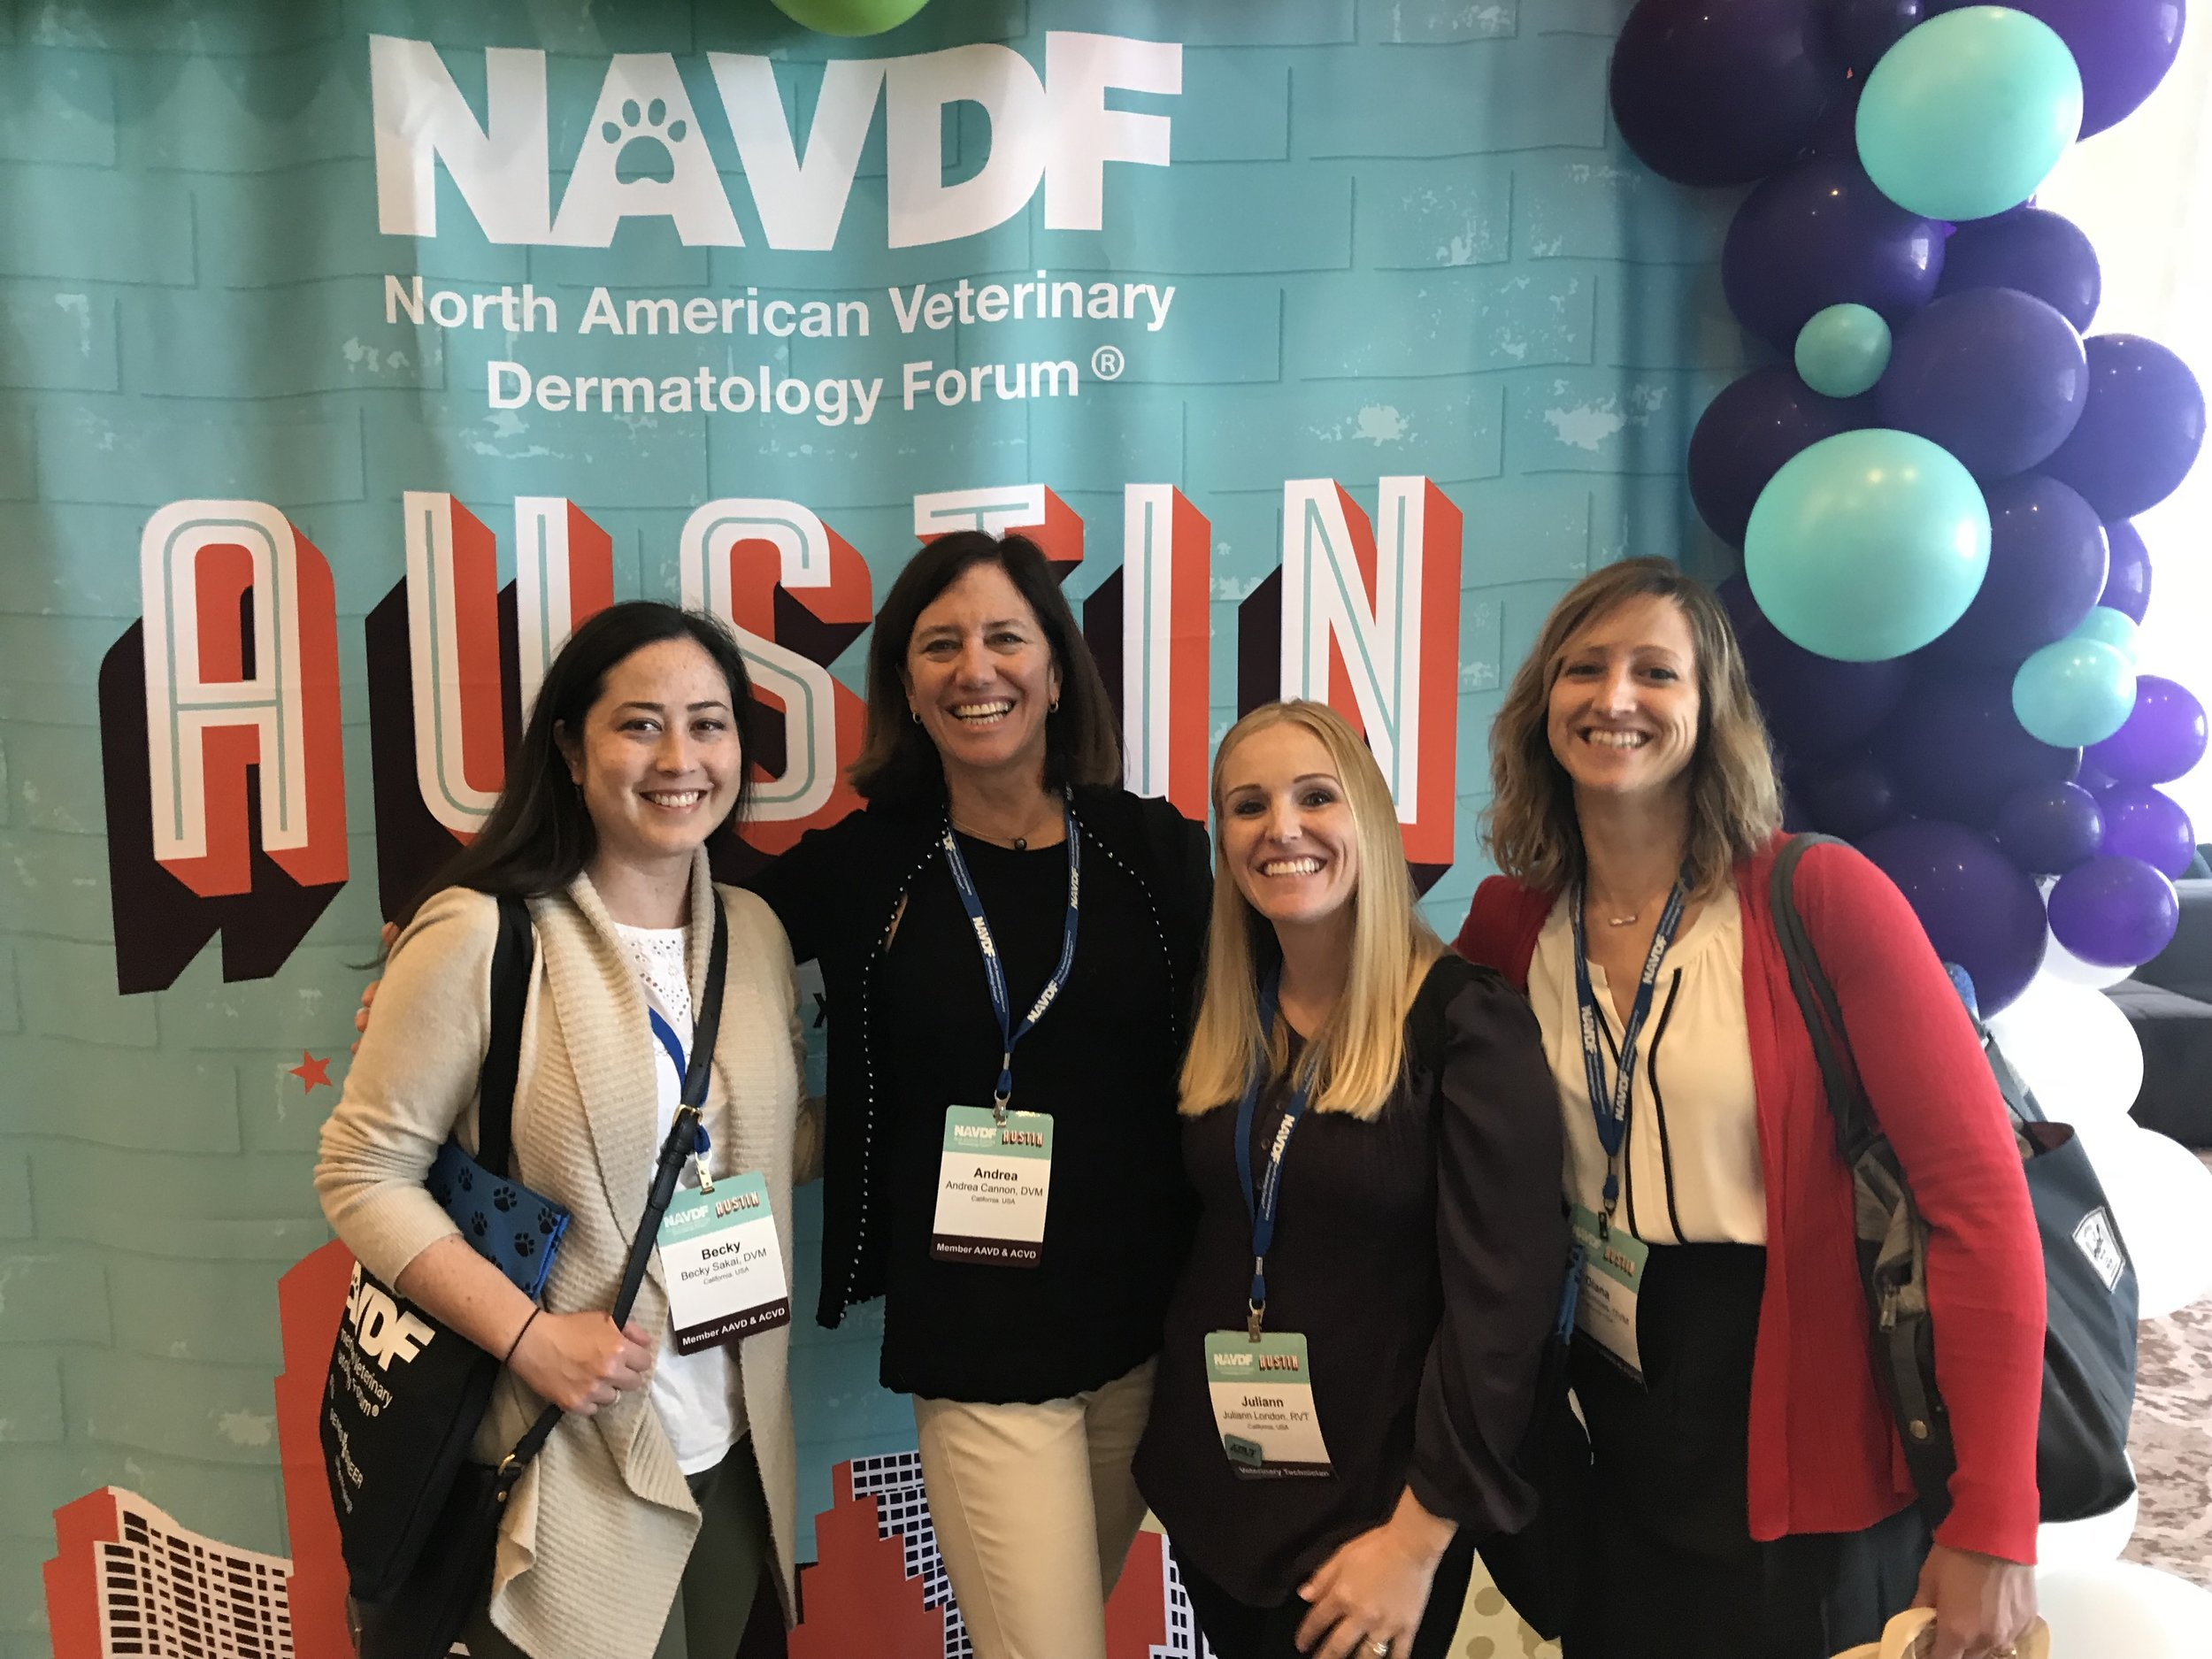 Dr. Sakai, Dr. Cannon, Juliann, and Dr. Simoes at the North American Veterinary Dermatology Forum